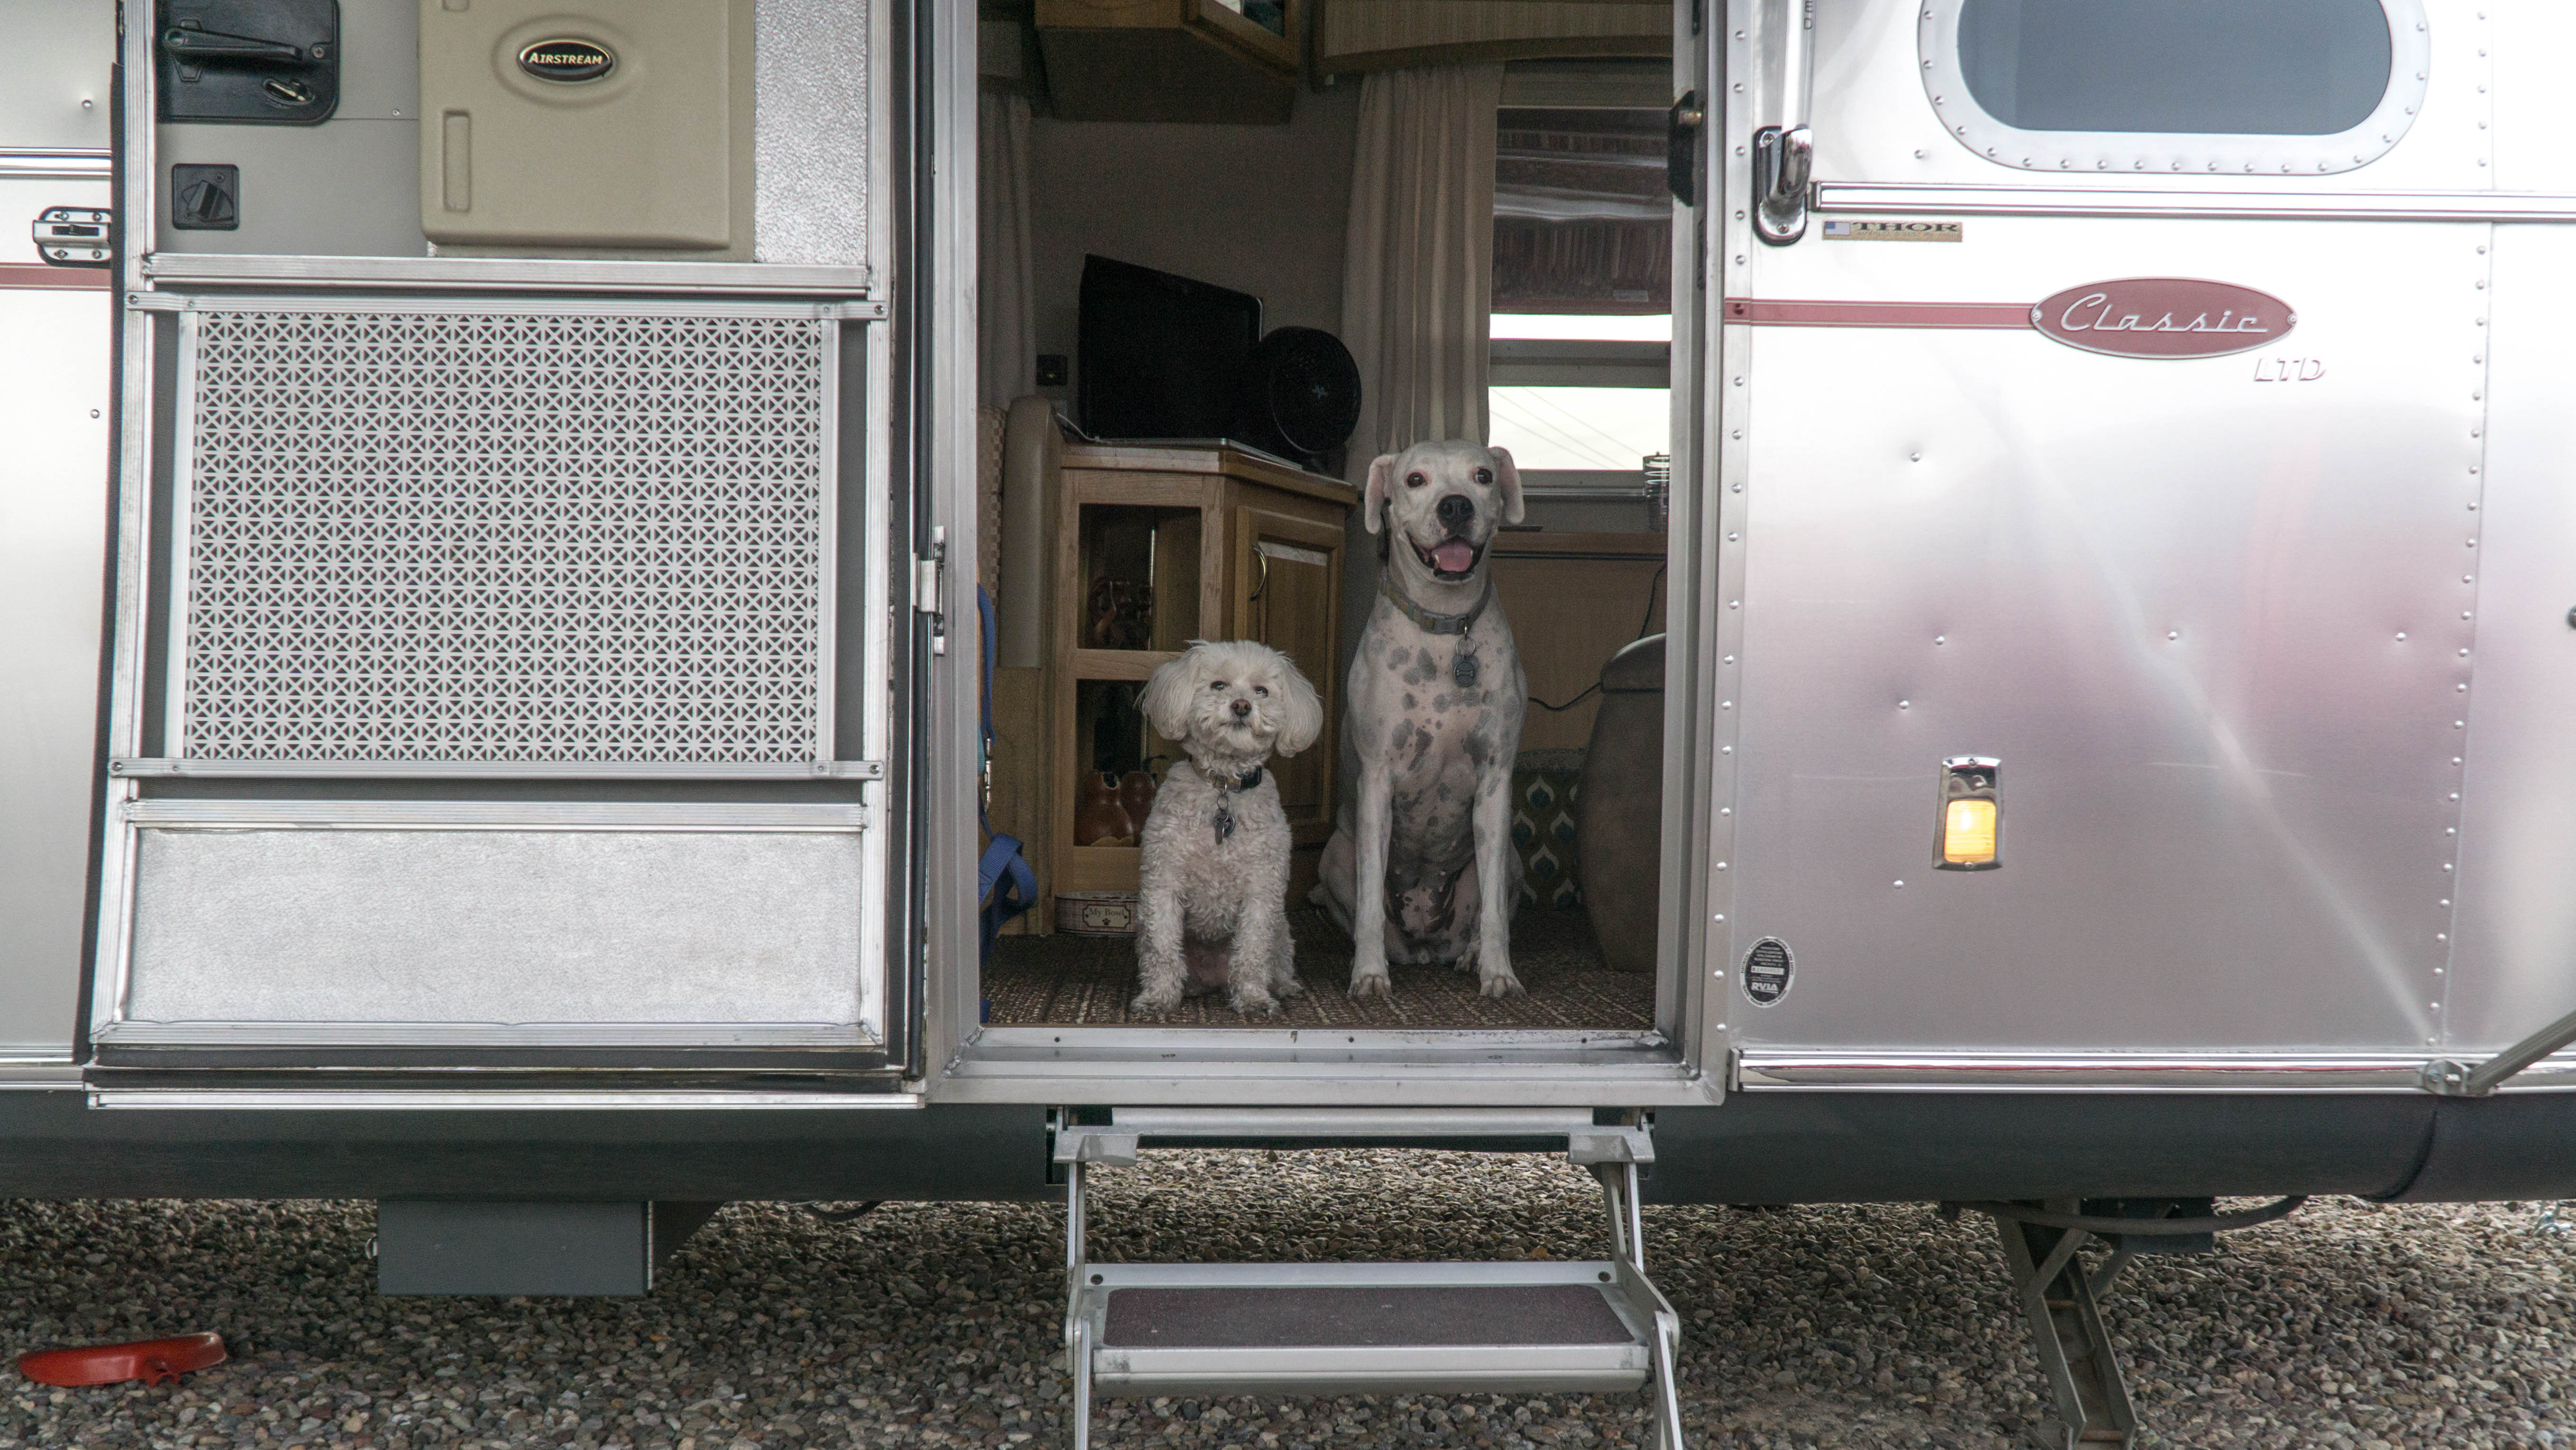 5 Suggestions for Ensuring a Good Transition to Tiny Living for your Dog